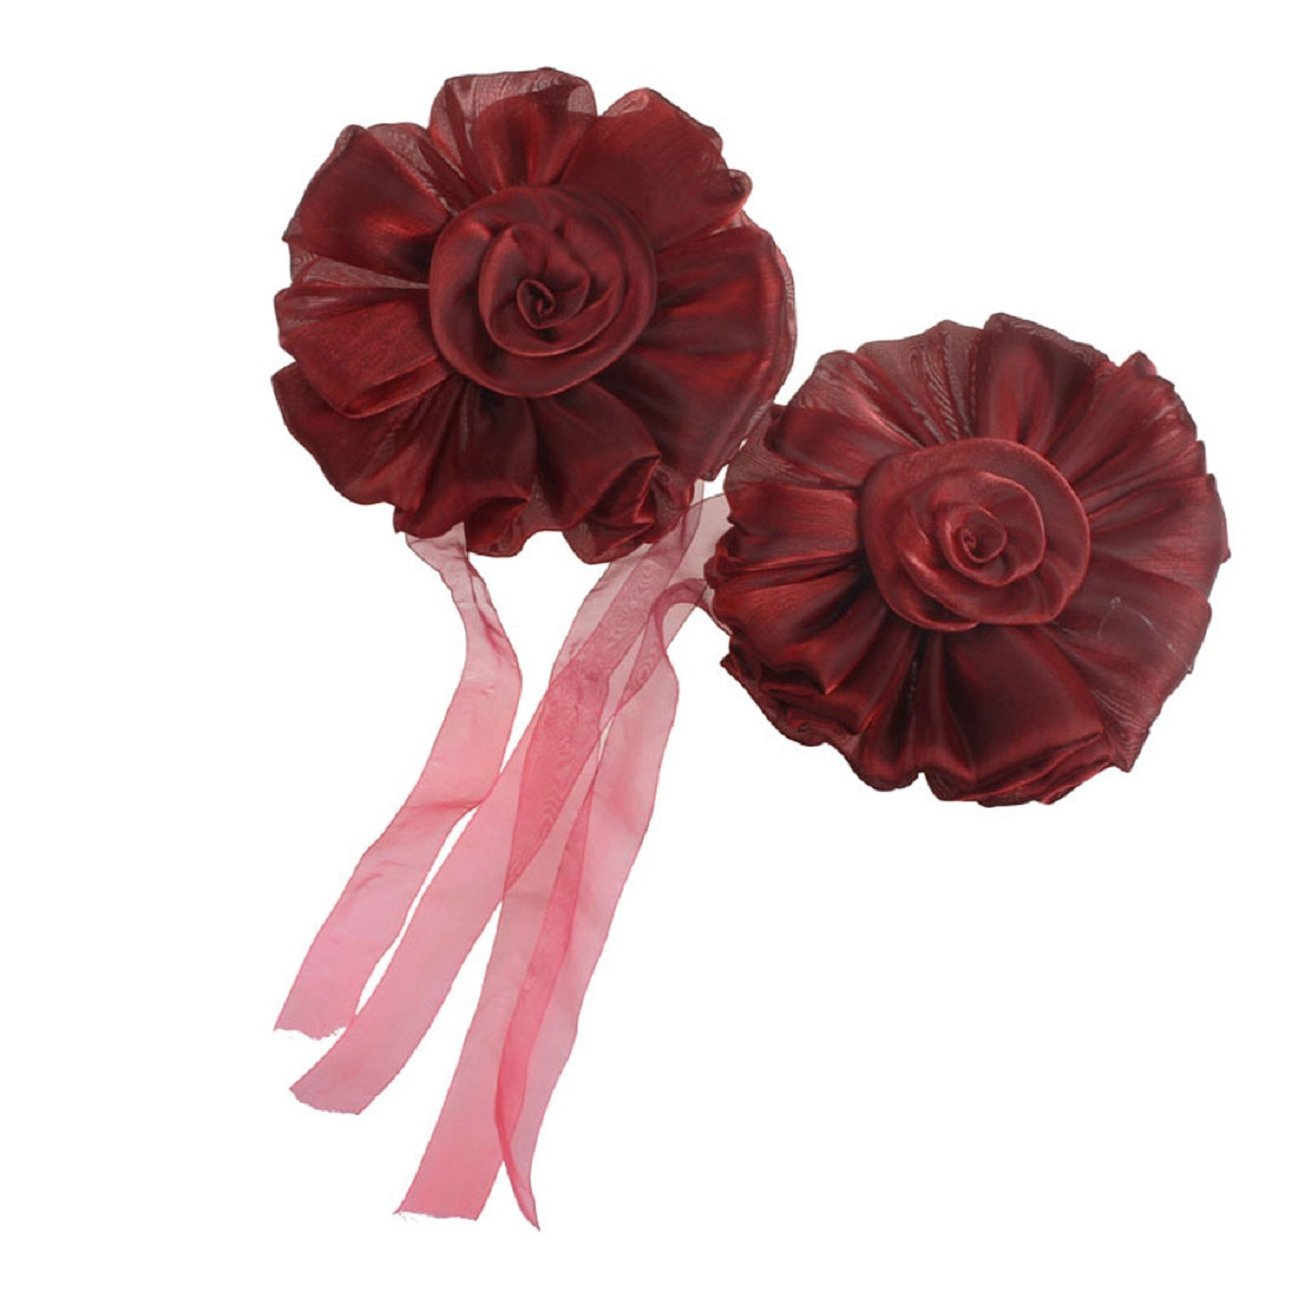 Cheap flower pair find flower pair deals on line at alibaba get quotations tonsee 1pair rose flower window curtain tieback buckle clamp hook fastener decor red izmirmasajfo